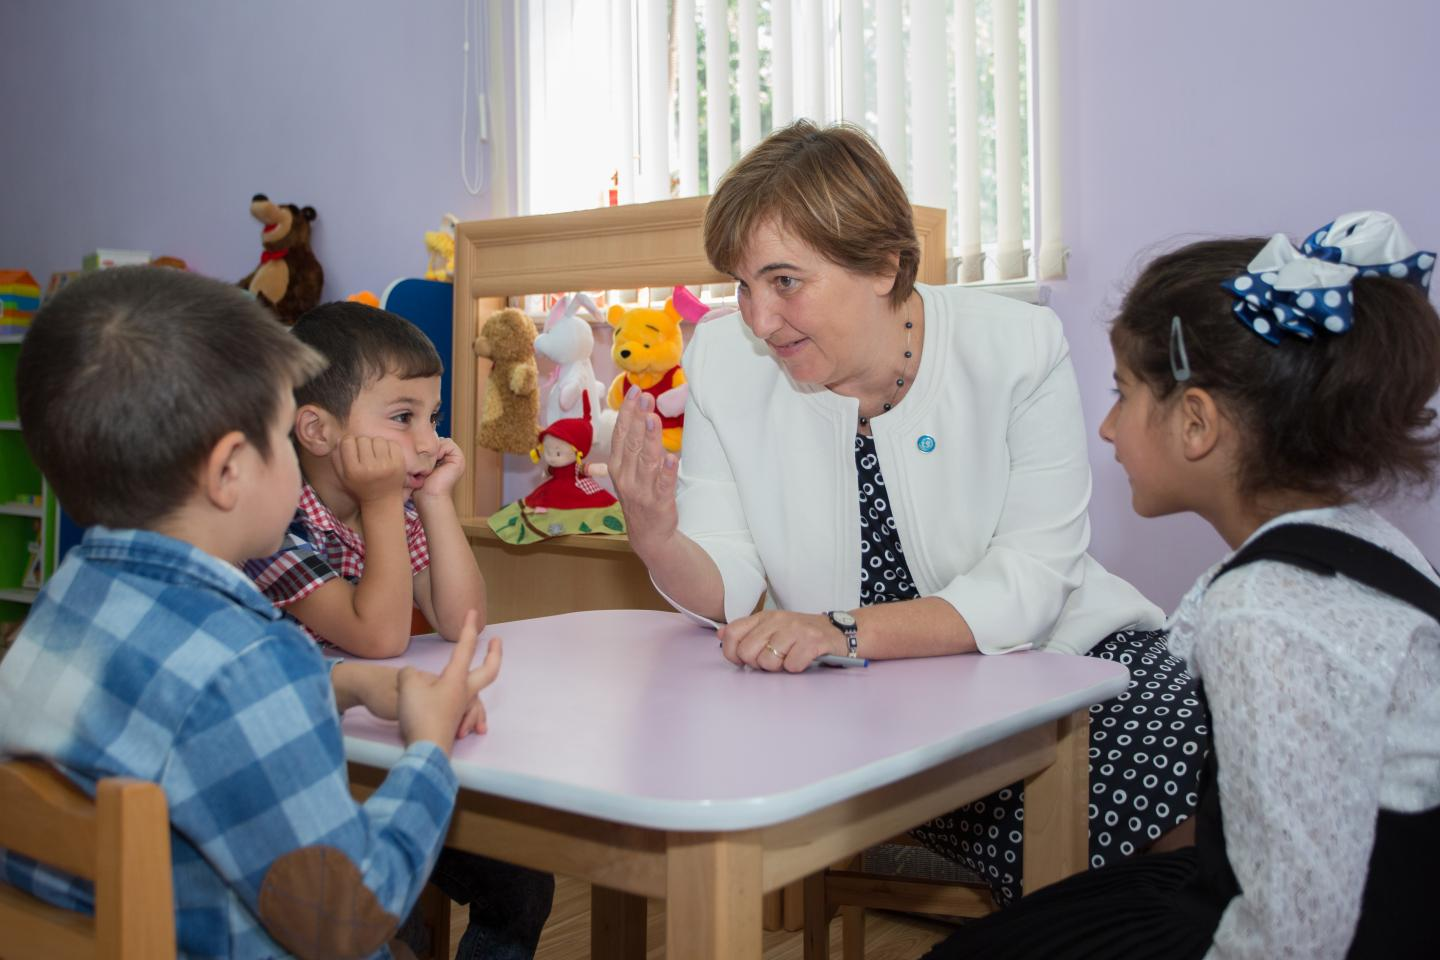 UNICEF's Representative in Armenia, Tanja Radocaj and three children from preschool established by UNICEF Armenia in Marts village, during the discussion.